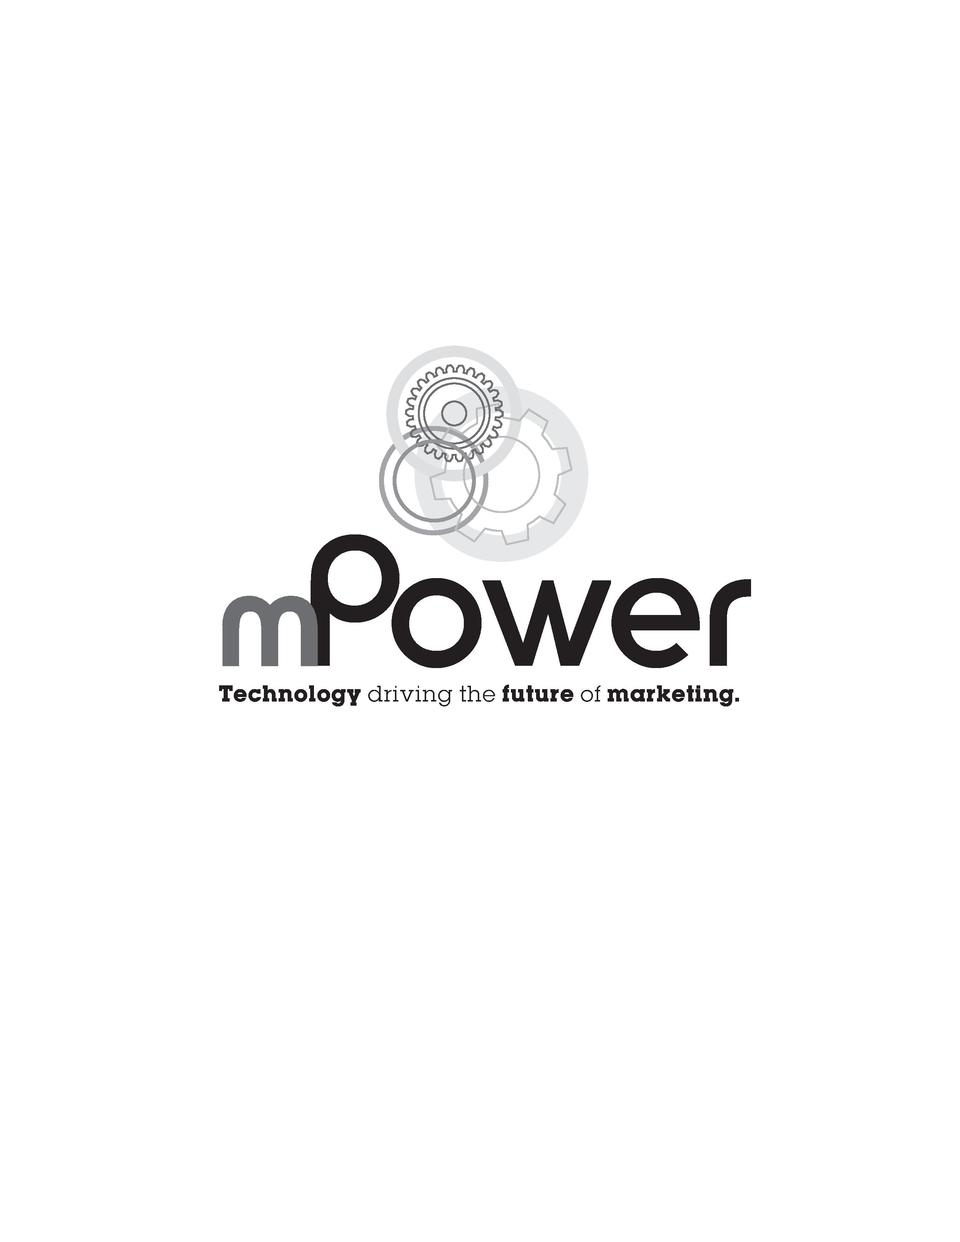 mPower Technology driving the future of marketing.